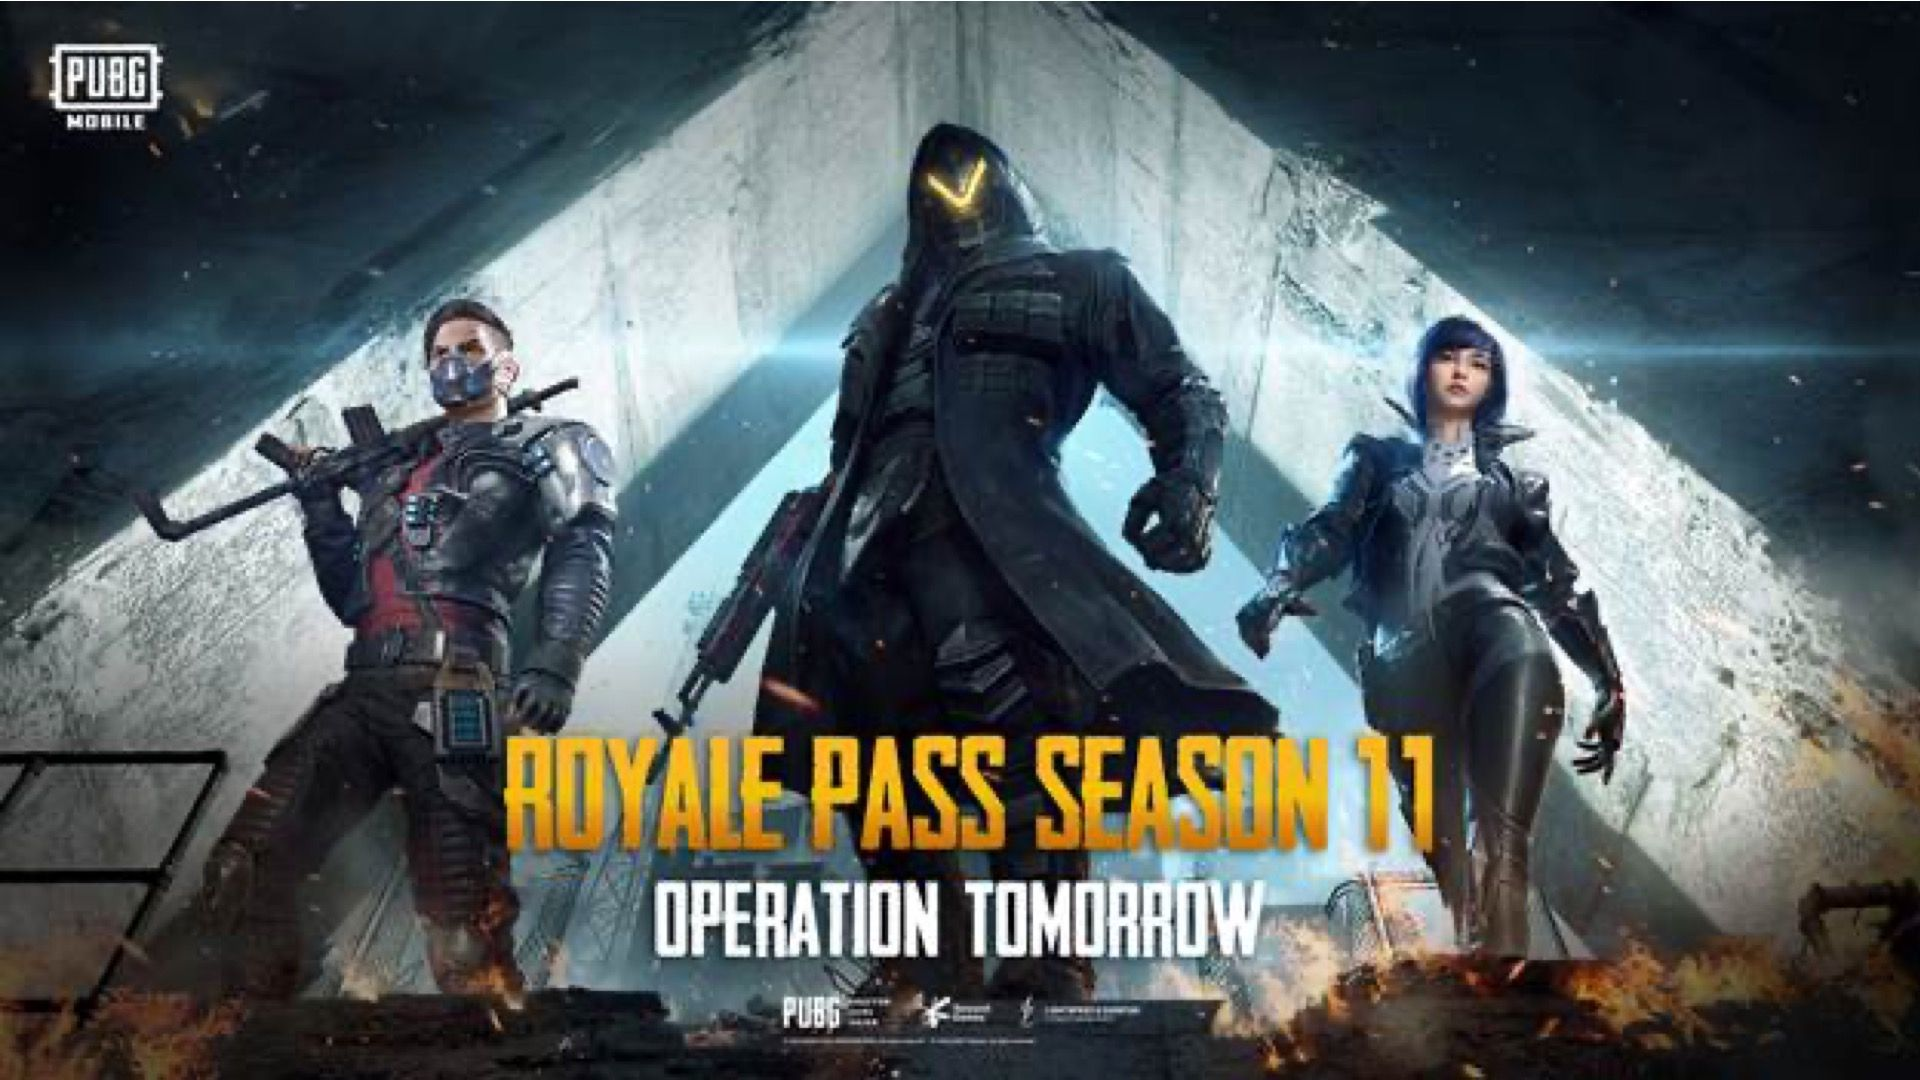 Pubg Mobile 0 16 5 Update Brings Royale Pass Season 11 With Domination Mode And More Best Action Games News Games Game Cheats